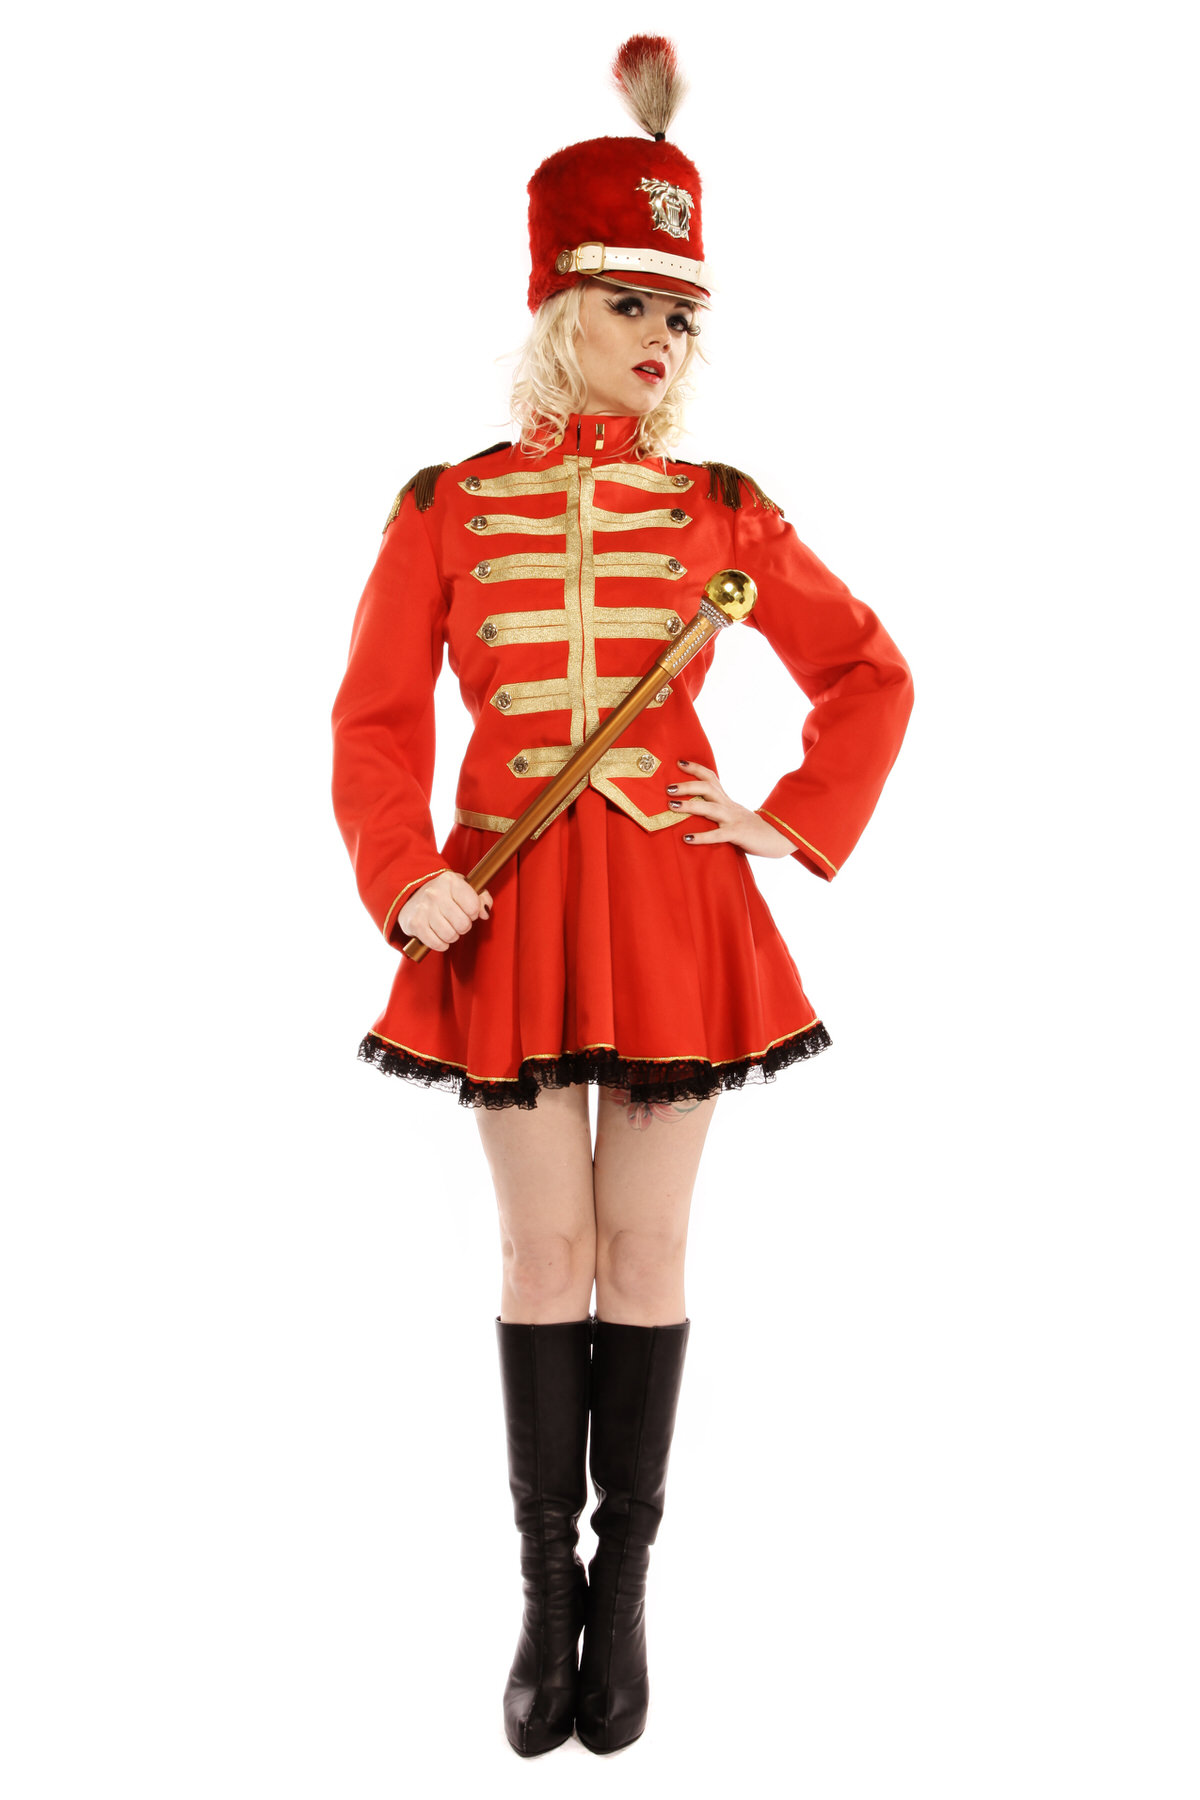 MAJORETTE RED AND GOLD COSTUME W GOLD BATON